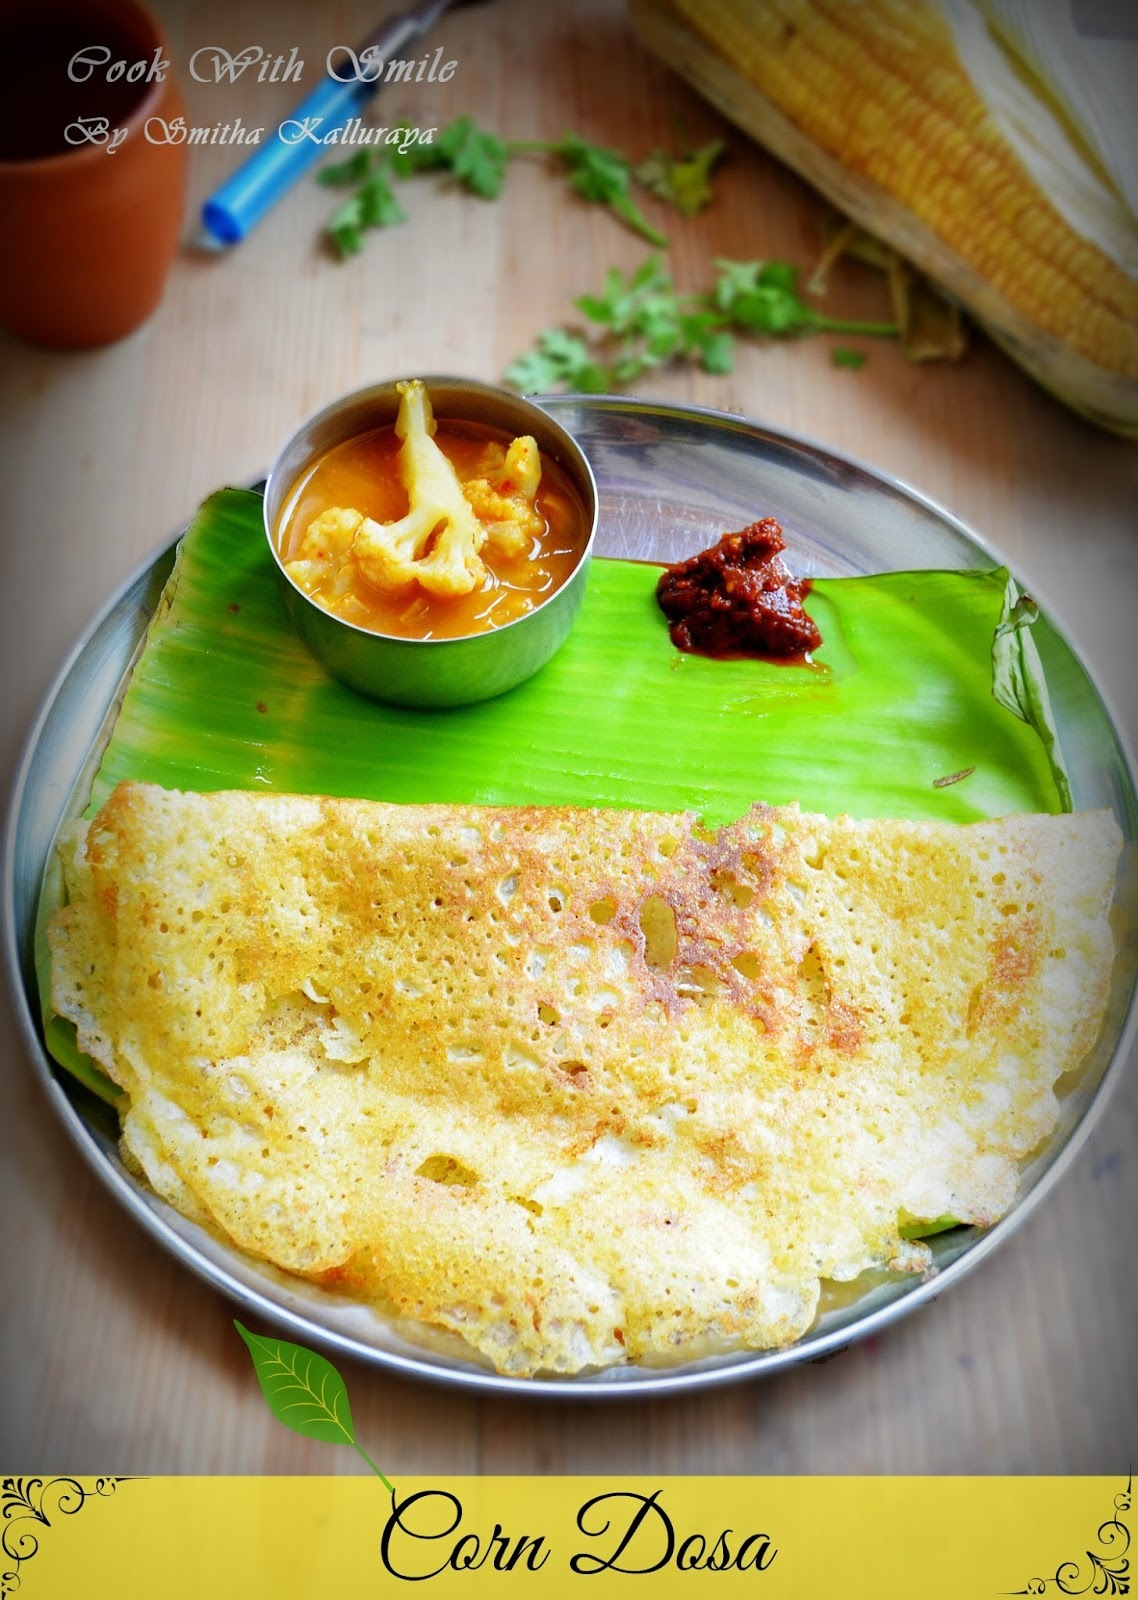 CORN DOSA / SWEET CORN DOSA - NO FERMENTATION - INSTANT DOSA RECIPE